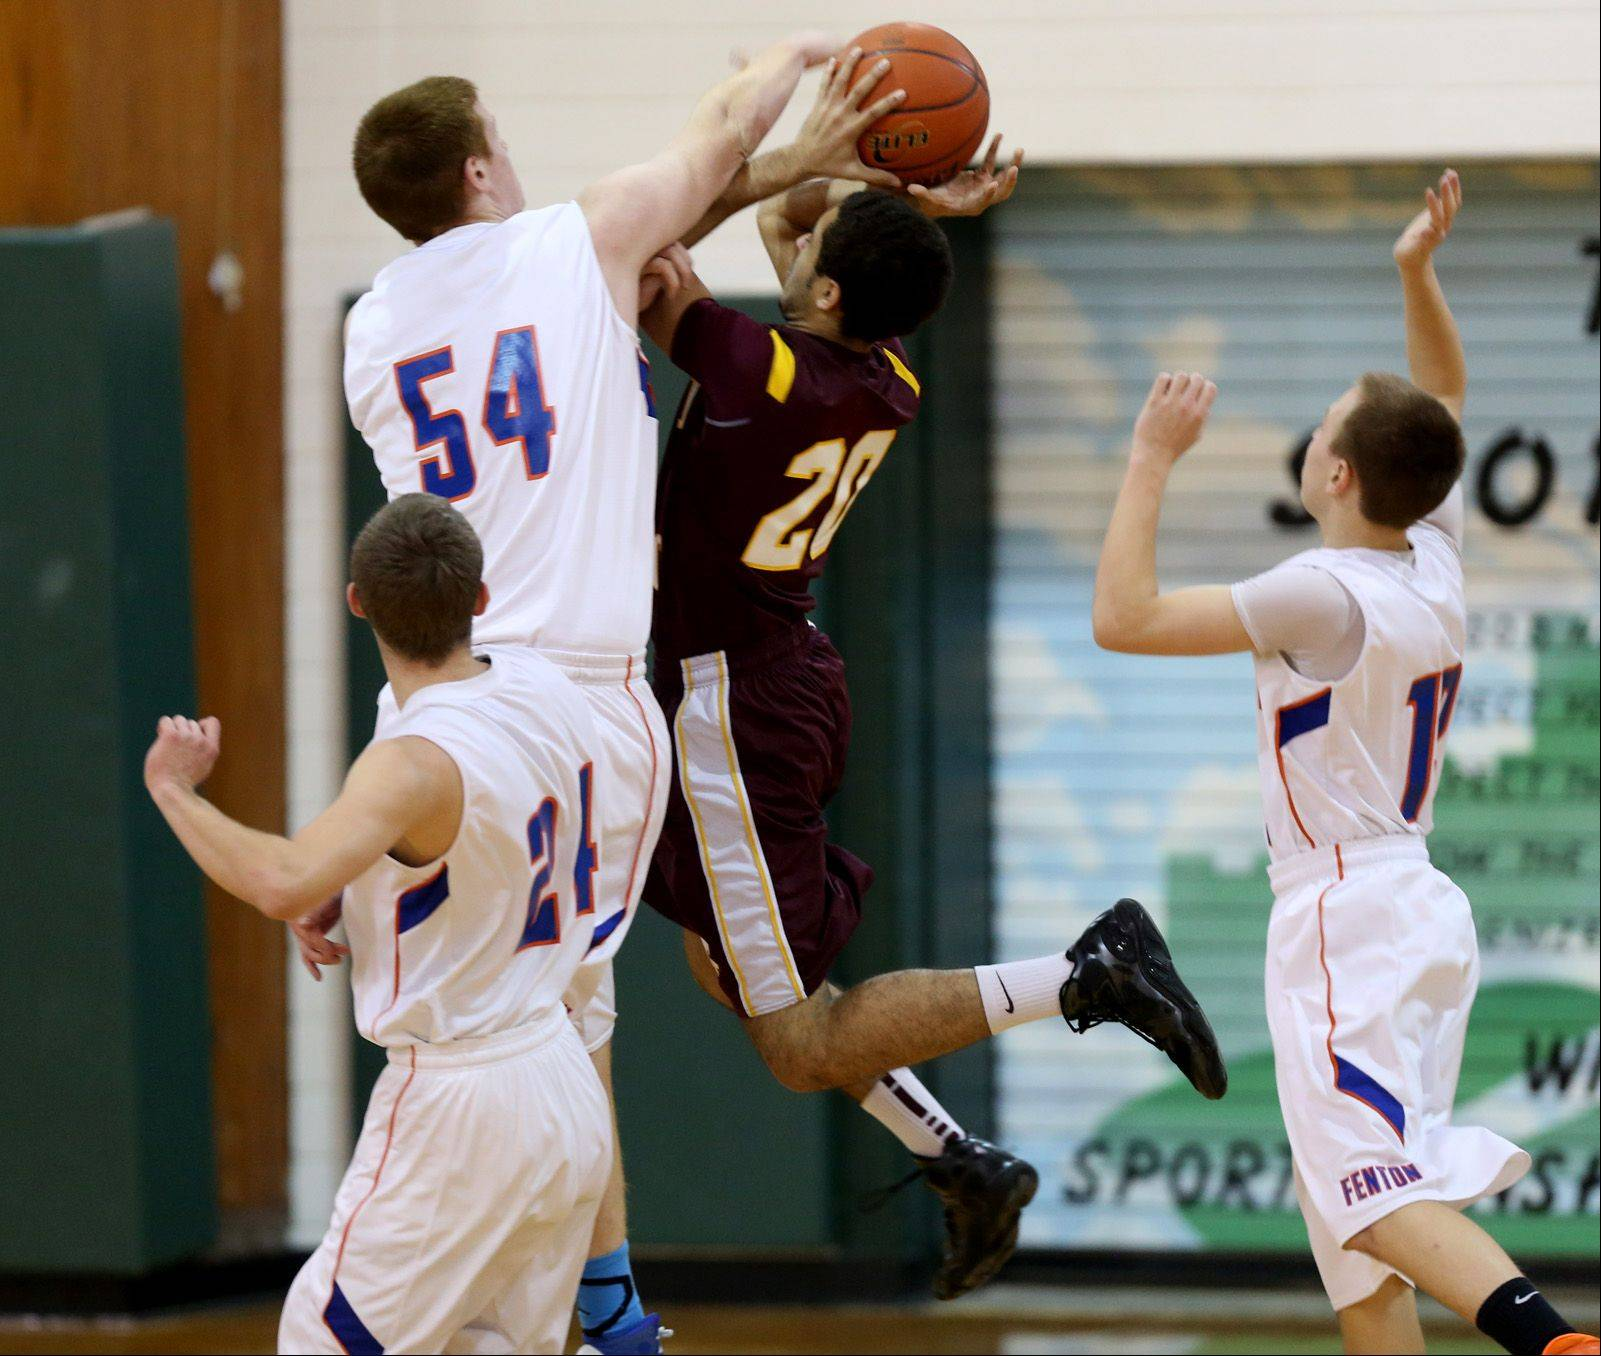 Images from the Fenton vs. Montini boys basketball game on Friday, Dec. 27, 2013.